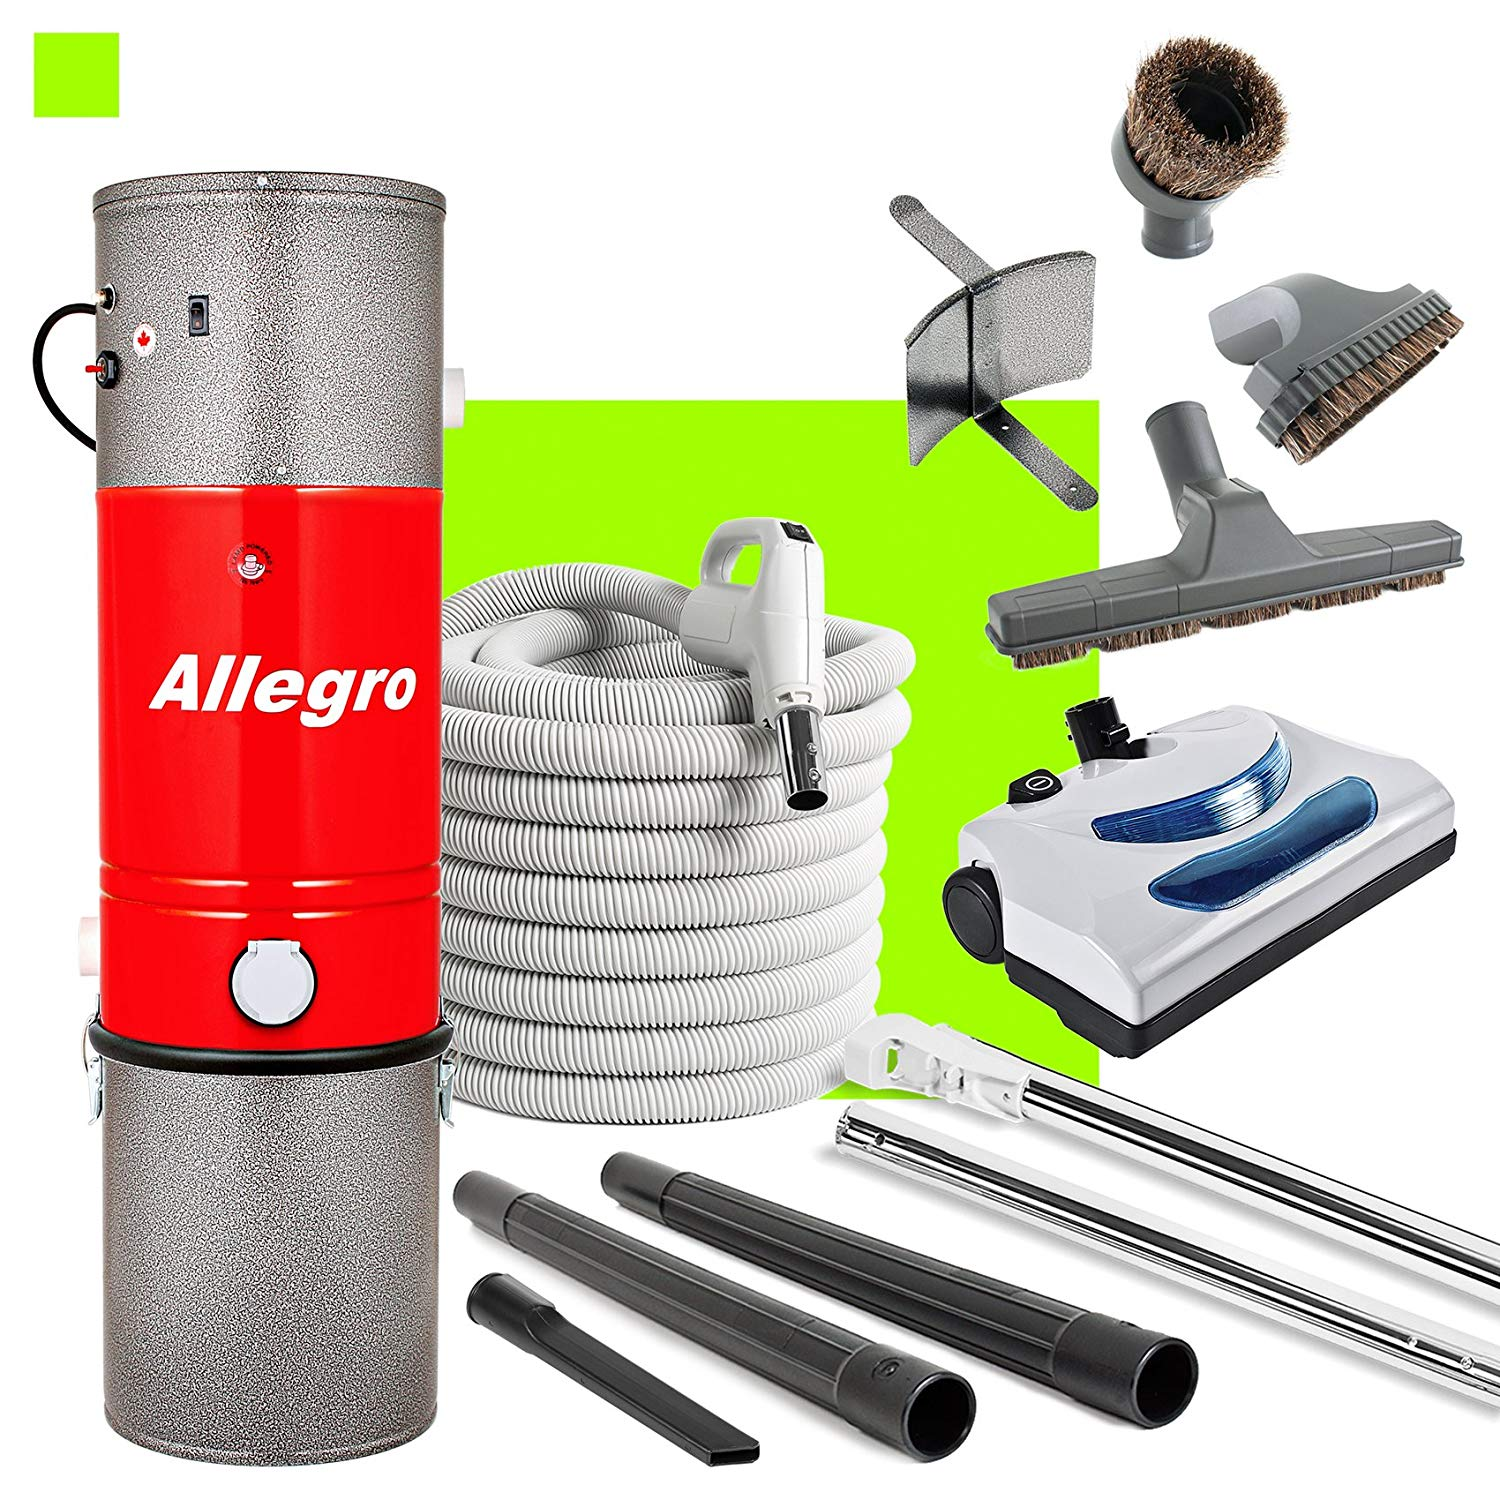 Allegro Central Vacuum MU4100 Unit